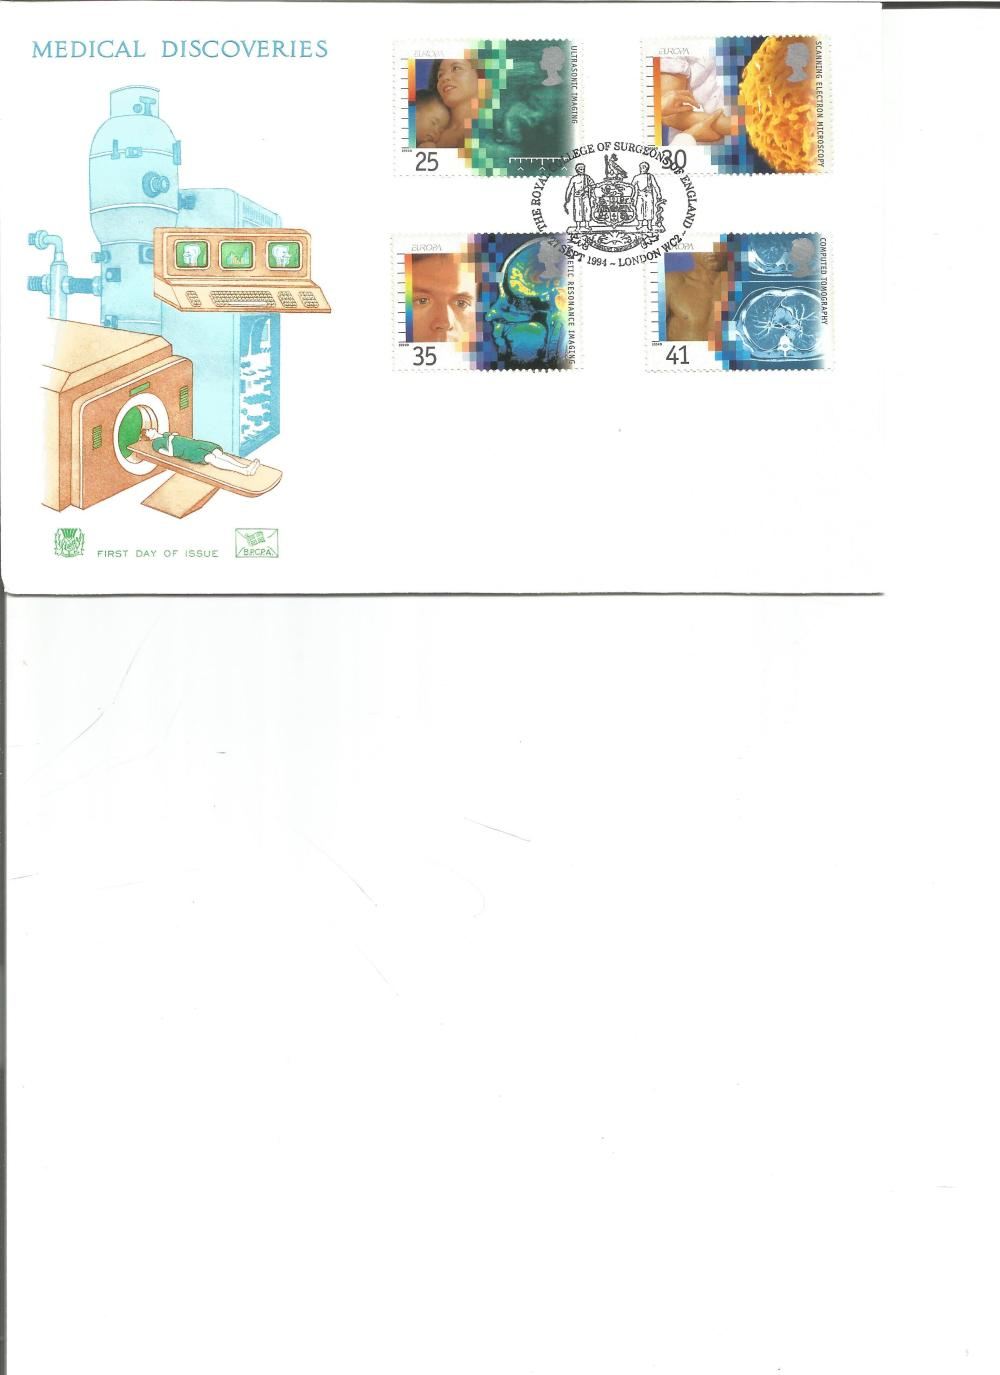 FDC Medical Discoveries c/w set of four commemorative stamps PM The Royal College of Surgeons of